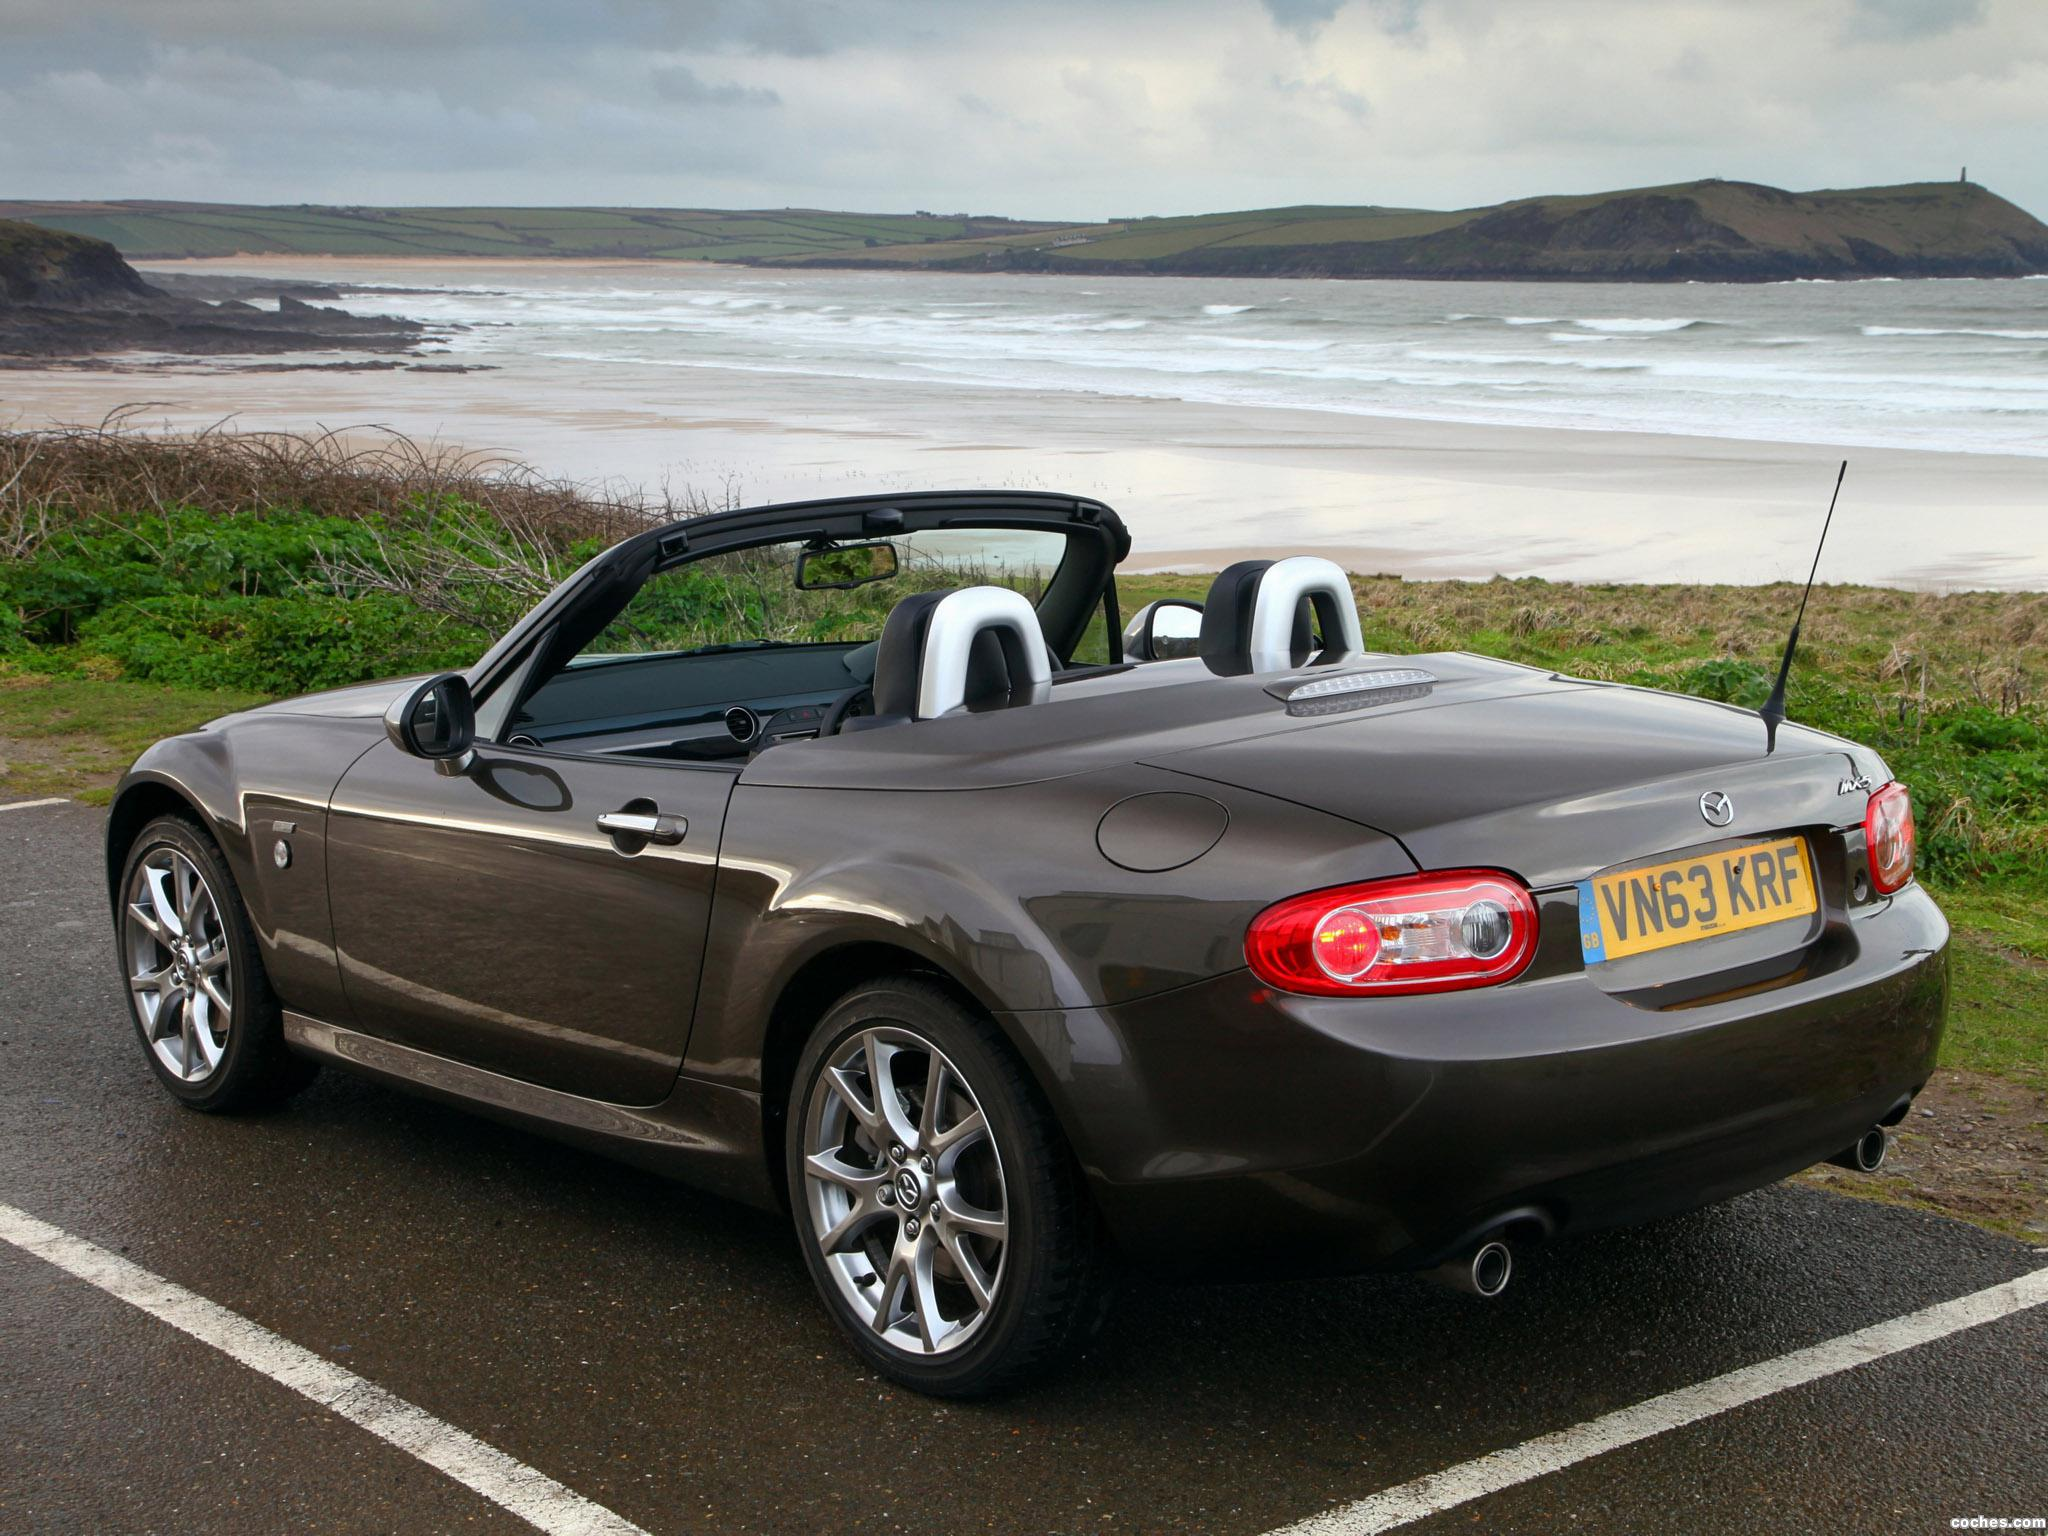 2013 Mazda MX-5 Roadster Coupe Convertible 2-door